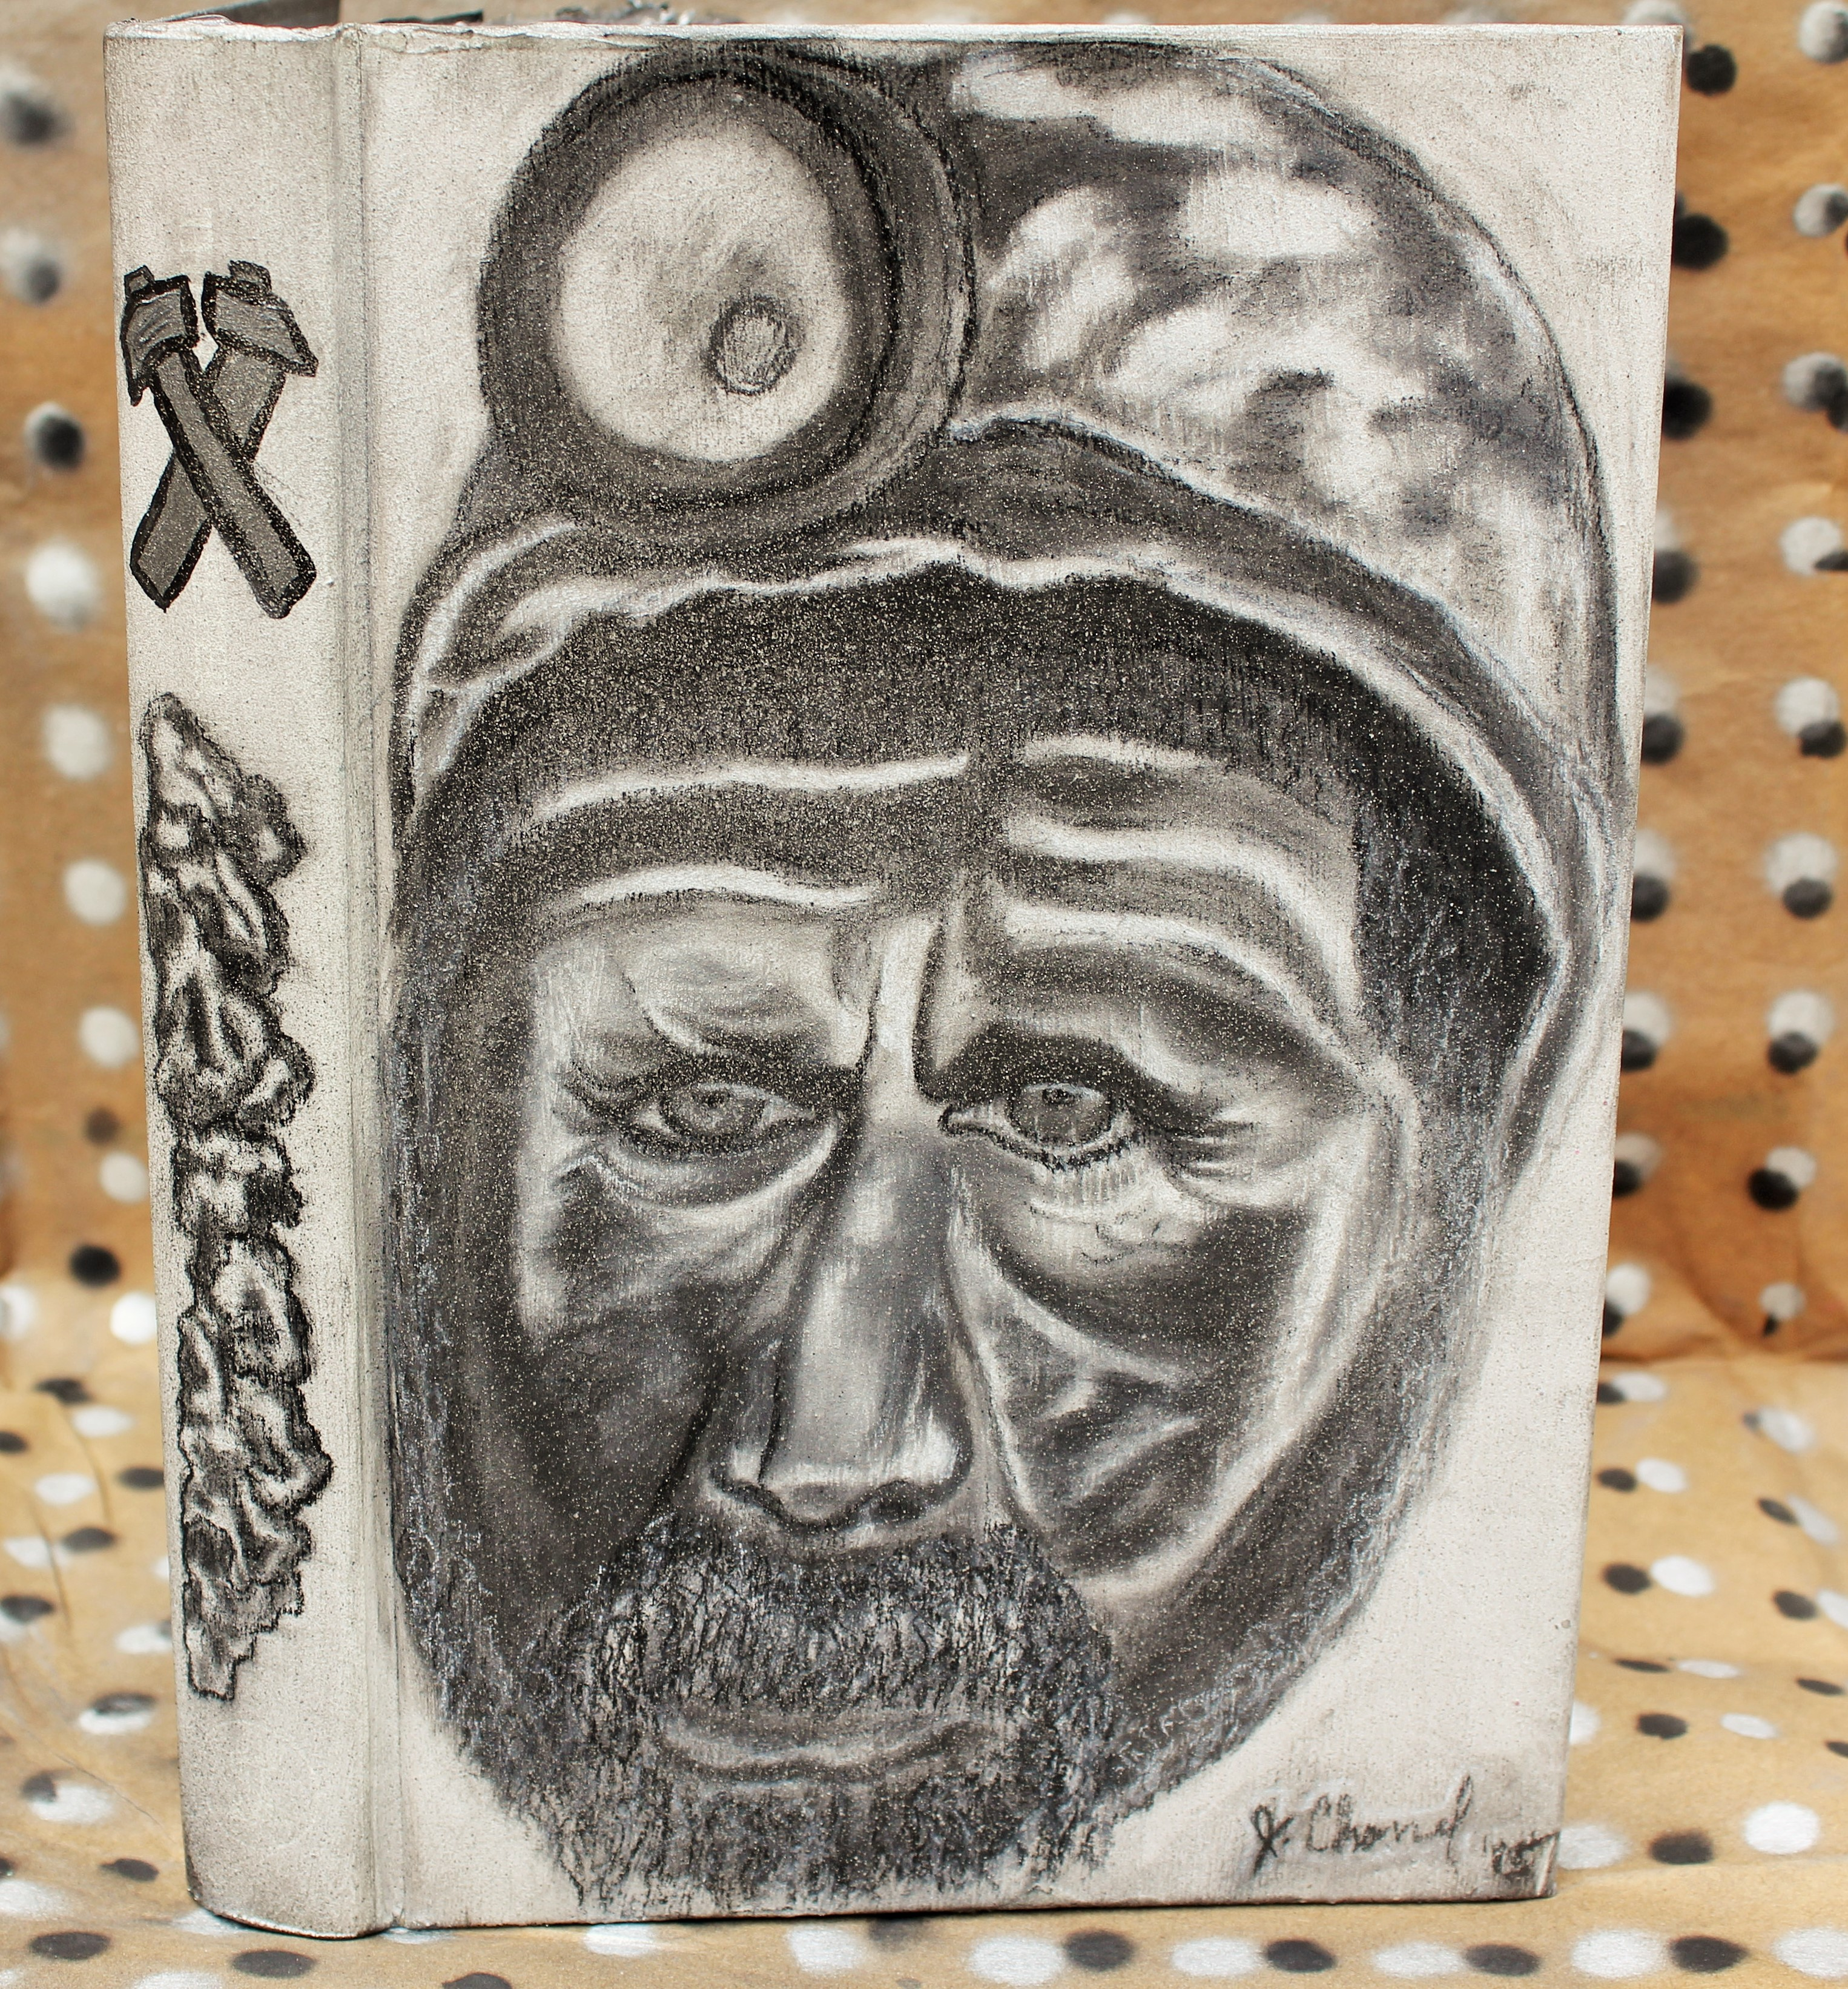 The Coal Miner